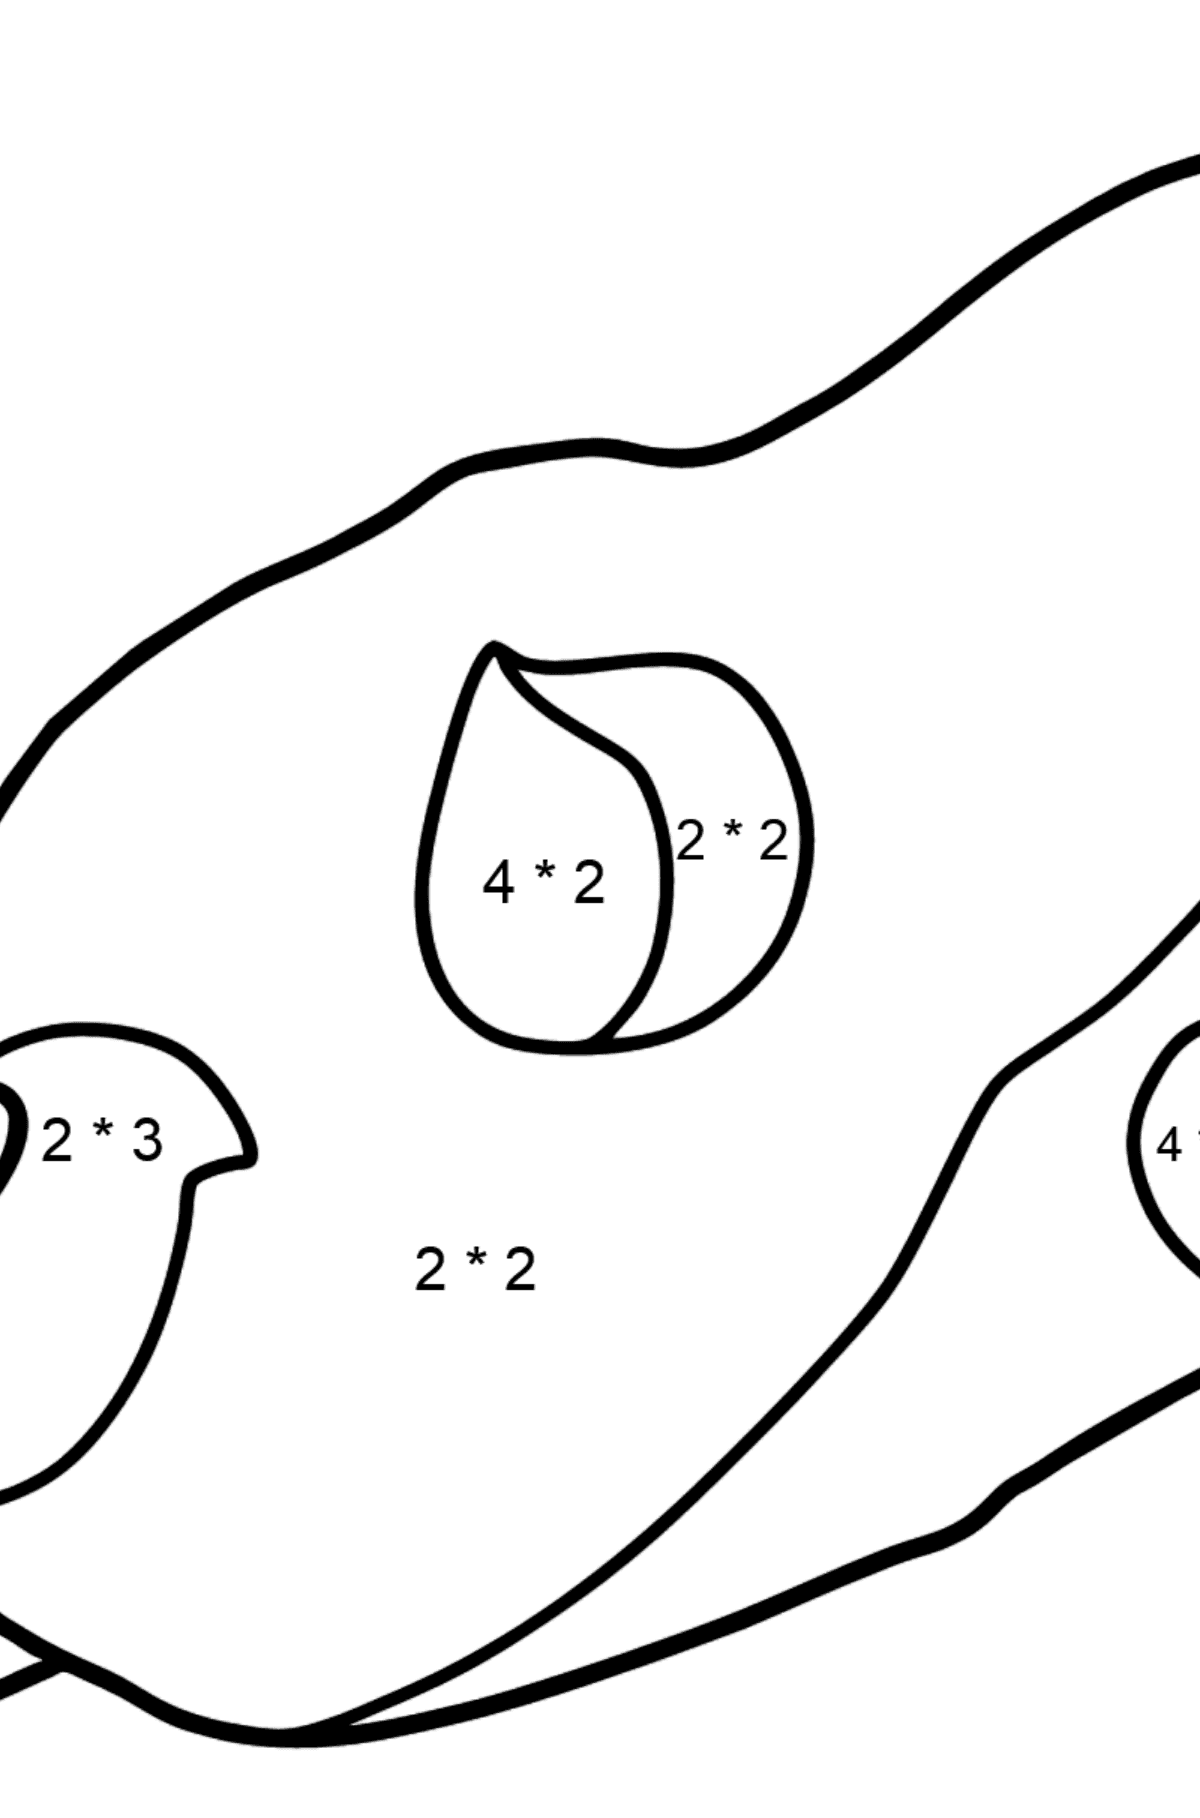 Asteroid coloring page - Math Coloring - Multiplication for Kids